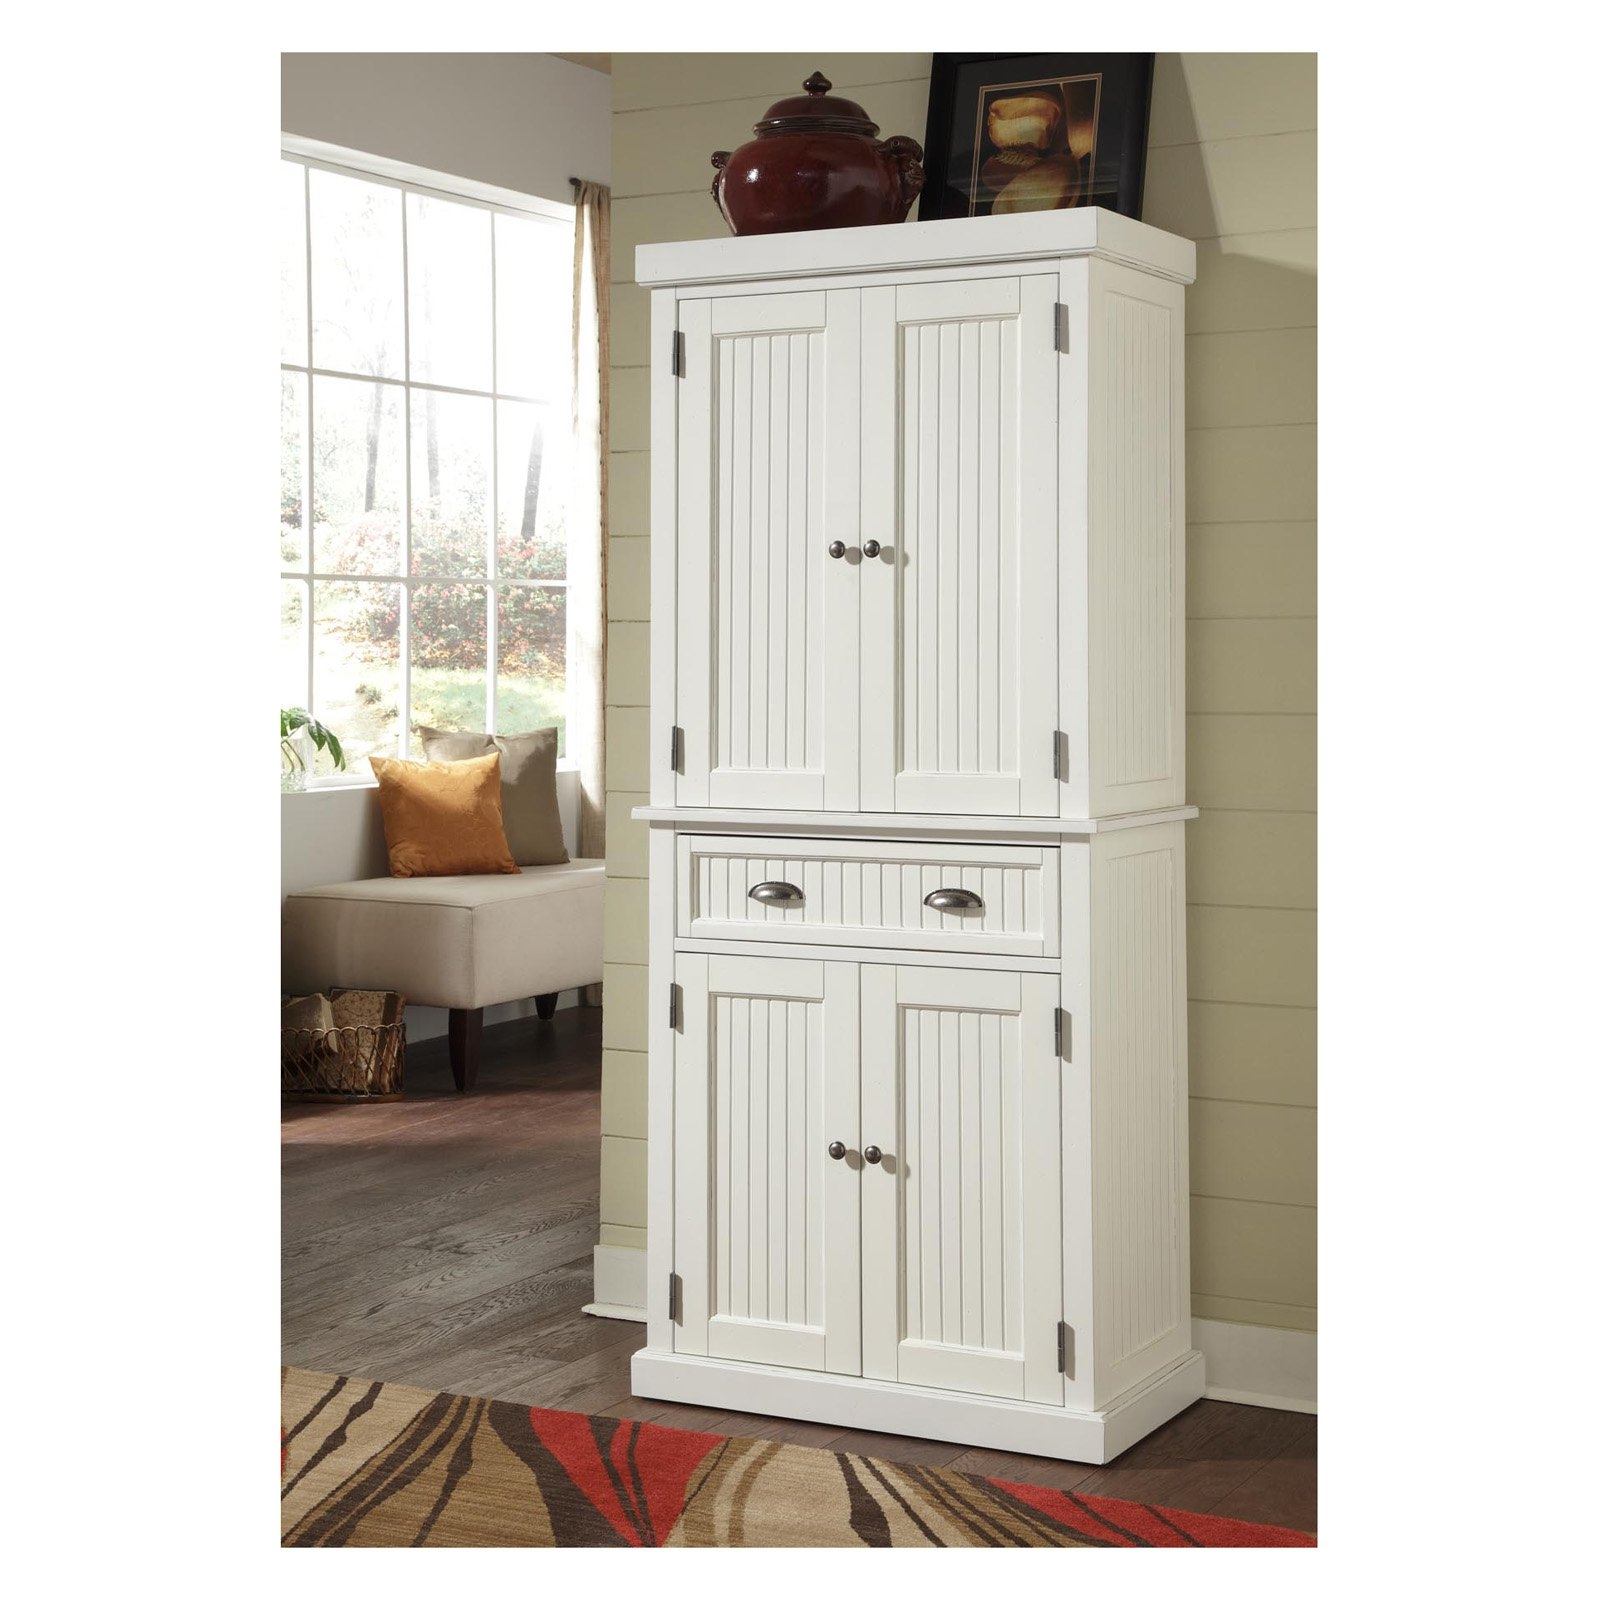 Nantucket White Distressed Finish Pantry Storage Kitchen Cabinet